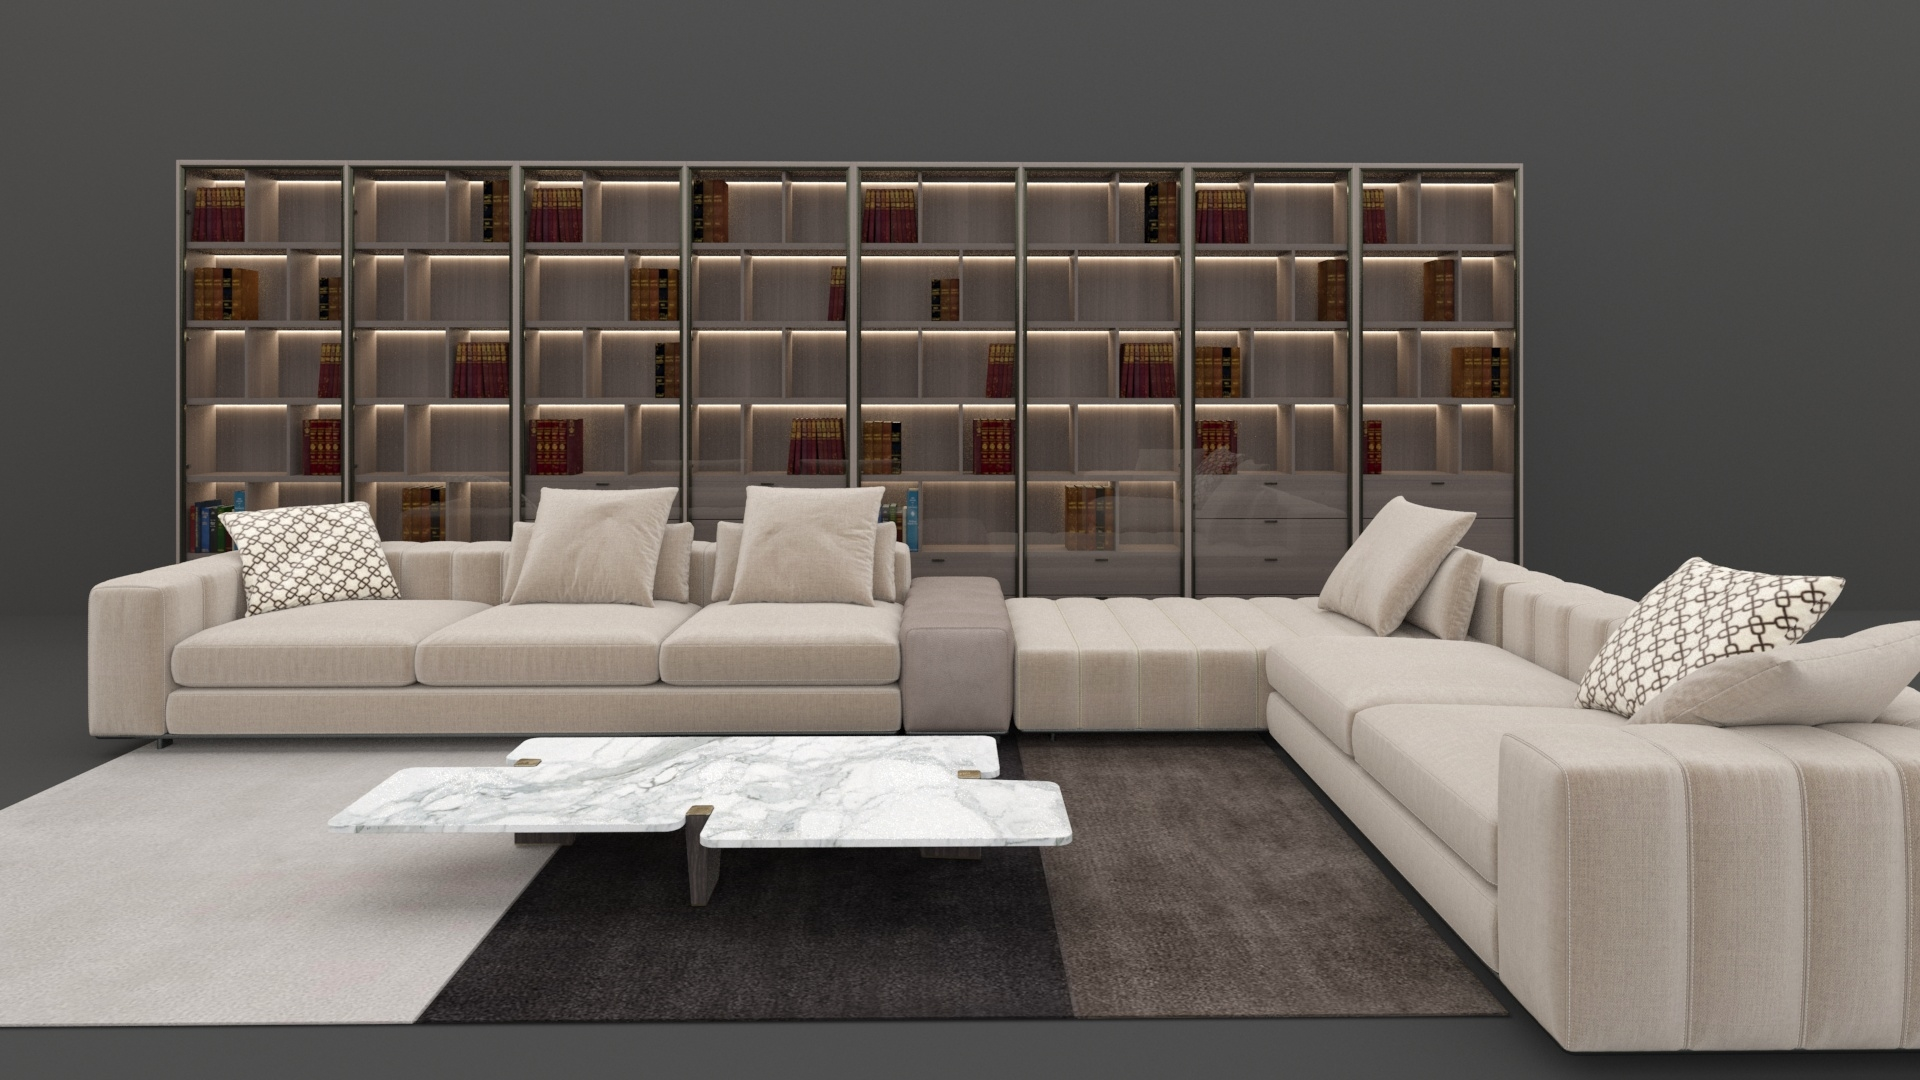 Full Size of Minotti Sofa Alexander Outlet Lawrence Range Uk Preise Freeman Seating System Hamilton Dimensions Und Bibliothek 3d Modell Turbosquid 1344168 Big Kolonialstil Sofa Minotti Sofa